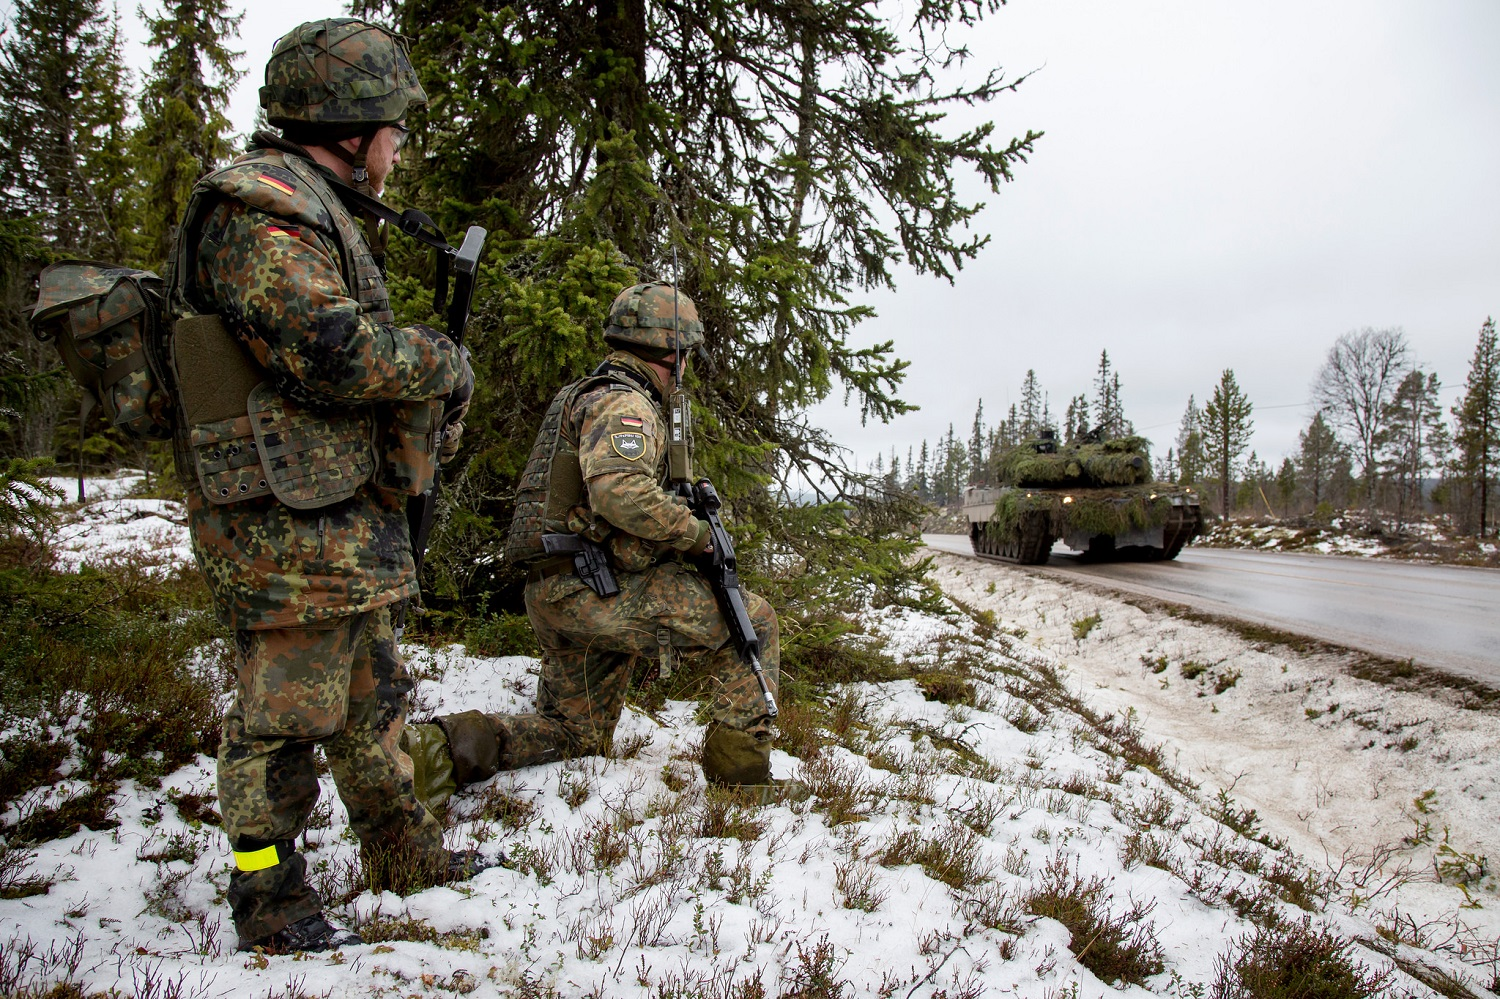 German soldiers as part of the Very High Readiness Joint Task Force during Trident Juncture 2018 (Bundeswehr)